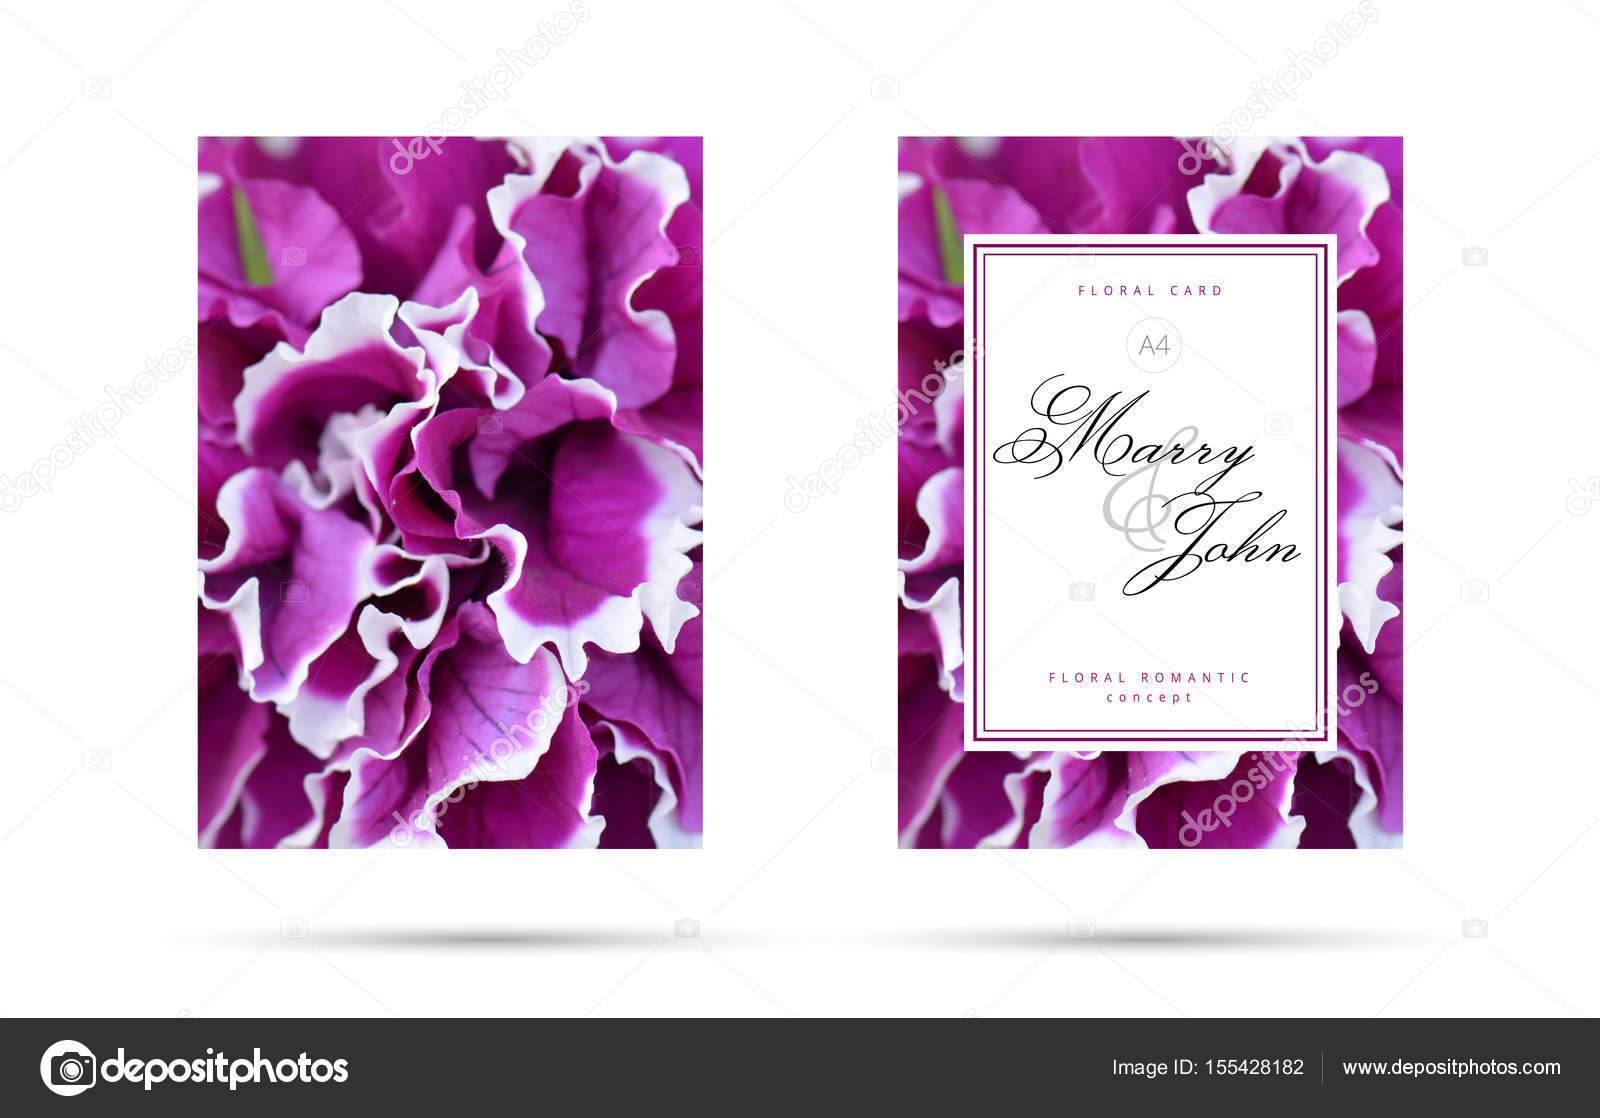 Fuchsia and purple wedding | Purple fuchsia floral card for wedding  invitation. Floral Romantic Flower background concept for your flyer  design. — Stock Photo © trimailova #155428182